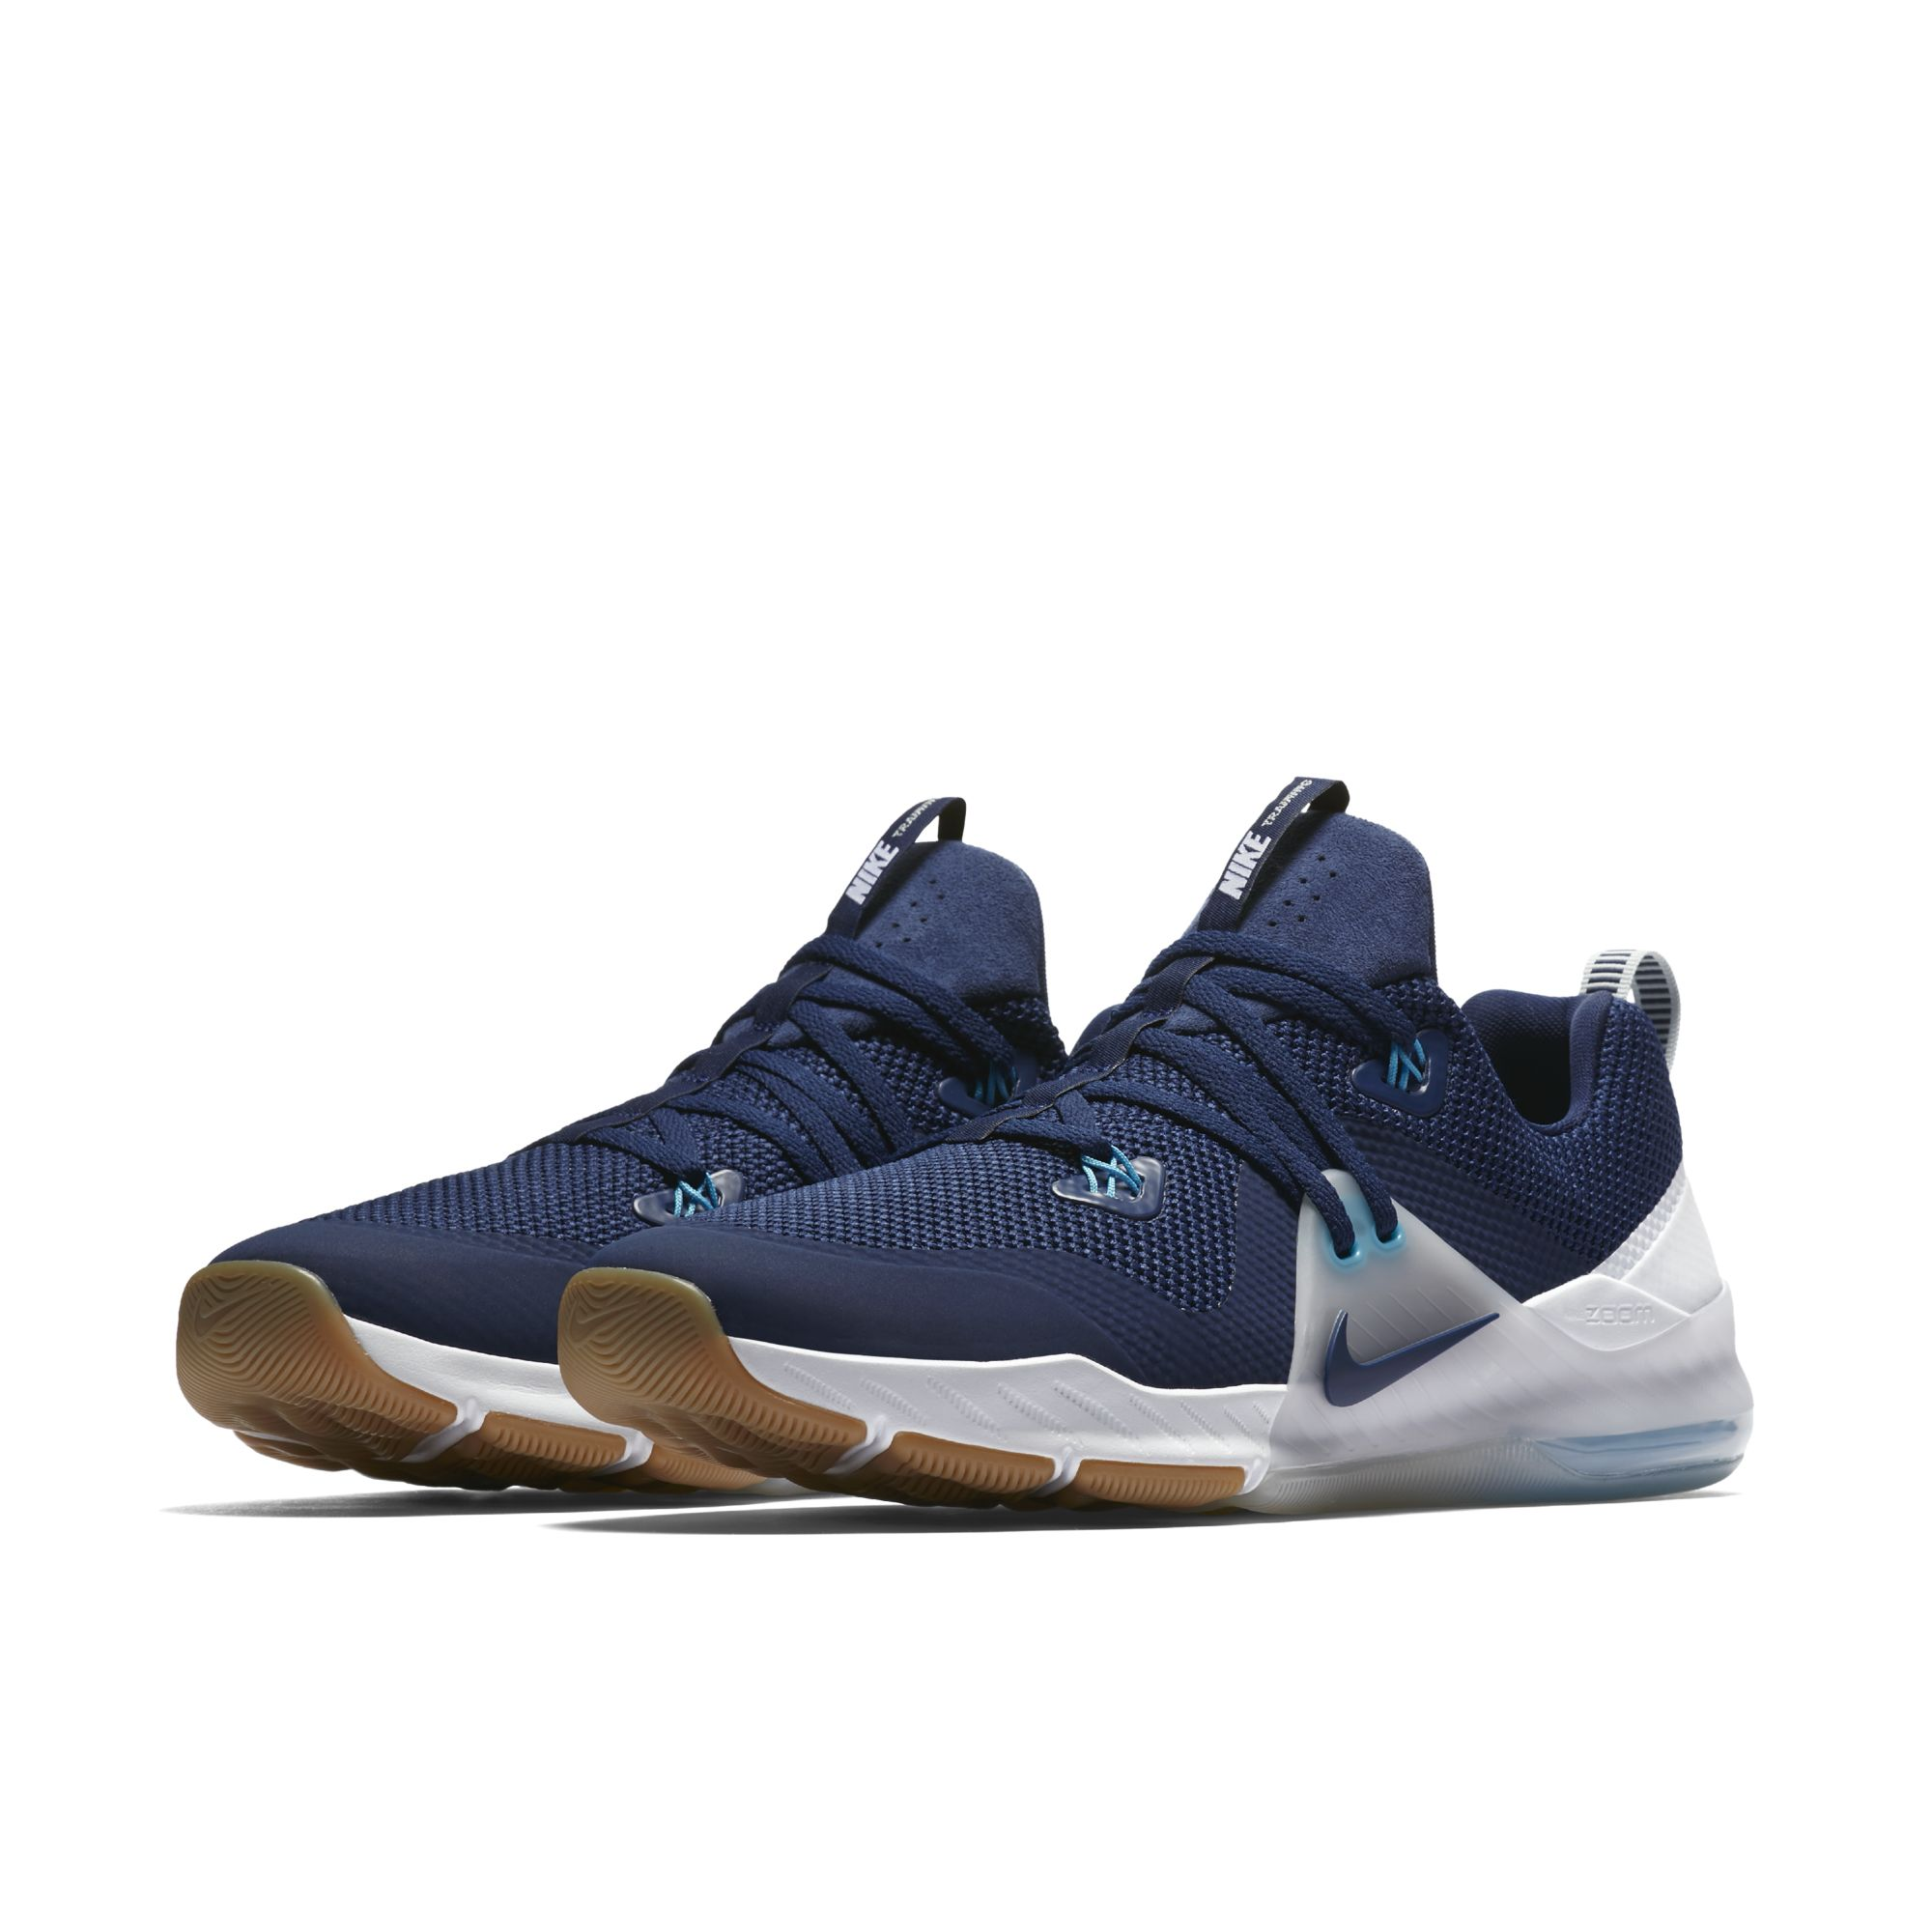 factory authentic special for shoe where can i buy Nike Launches Five Colorways of the Zoom Command - WearTesters